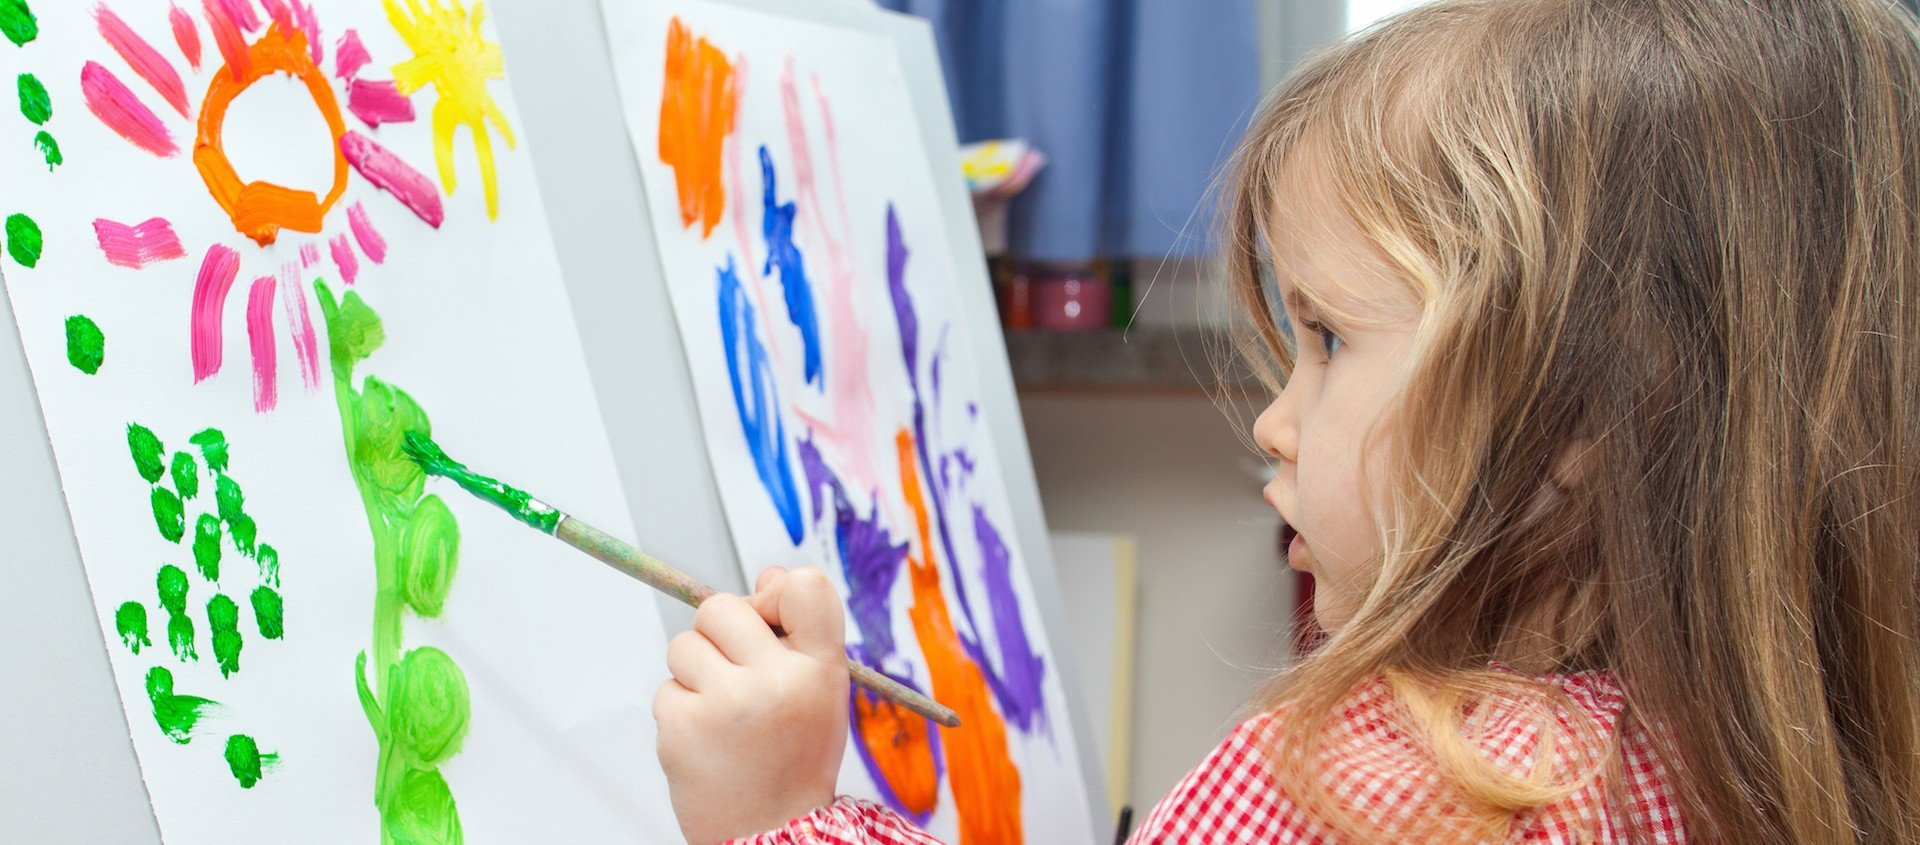 Cute little blond girl holding brush and painting on paper